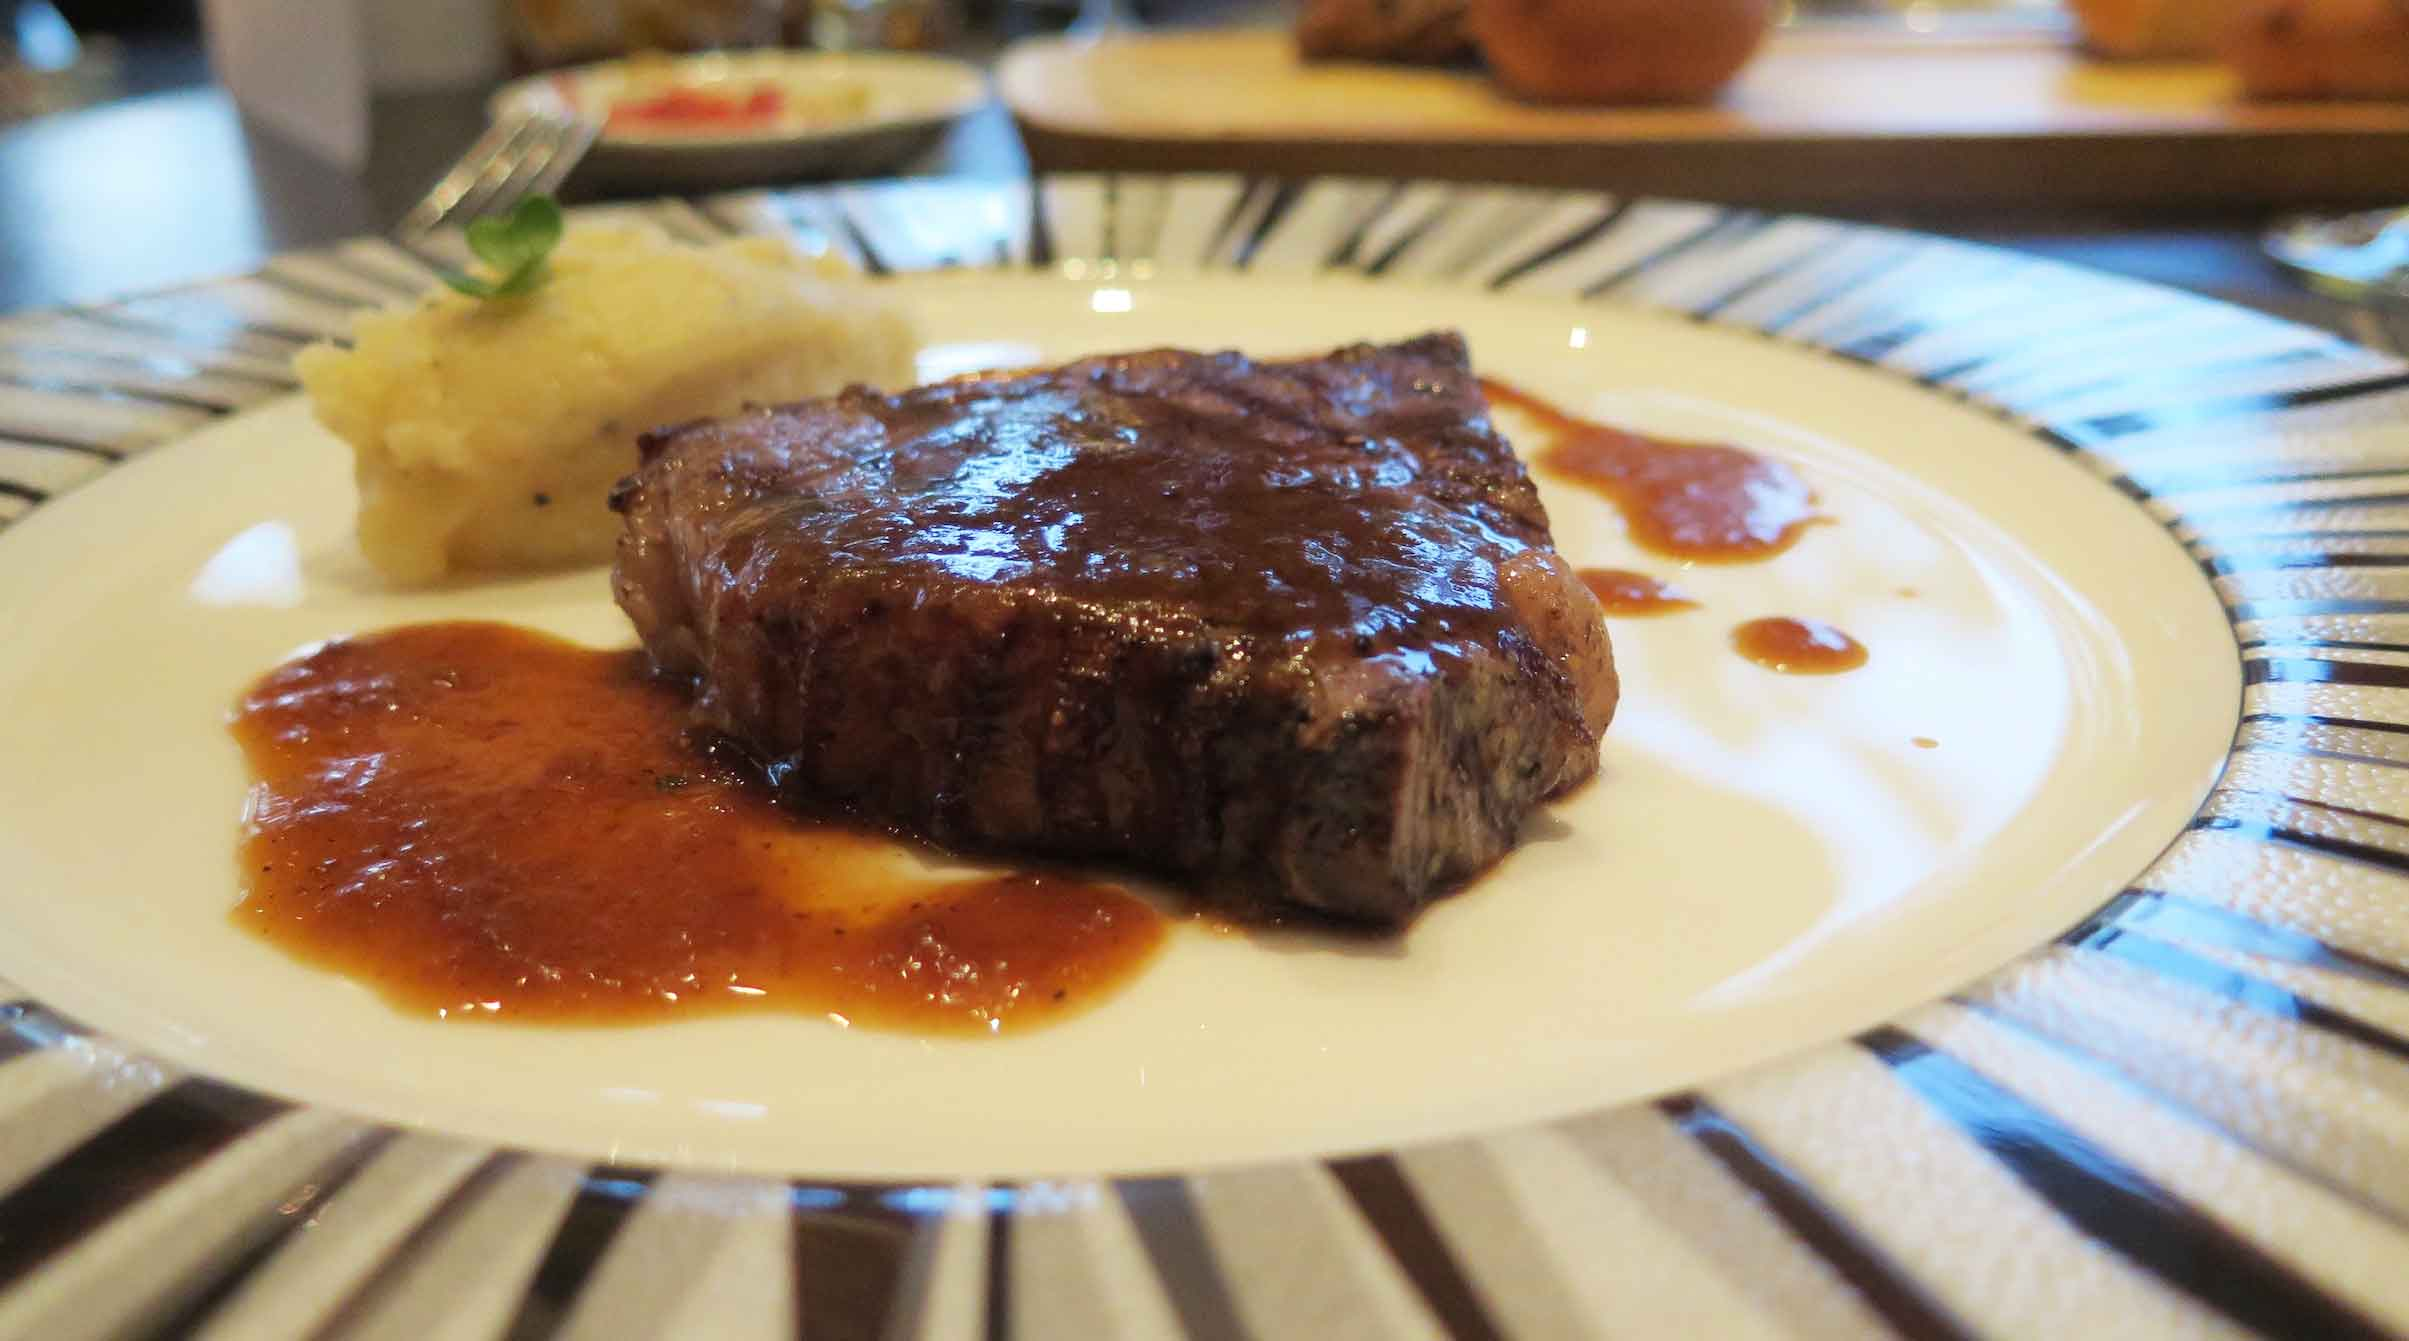 Grilled Rib Eye with Mashed Potatoes, Truffle Oil and Pepper Sauce